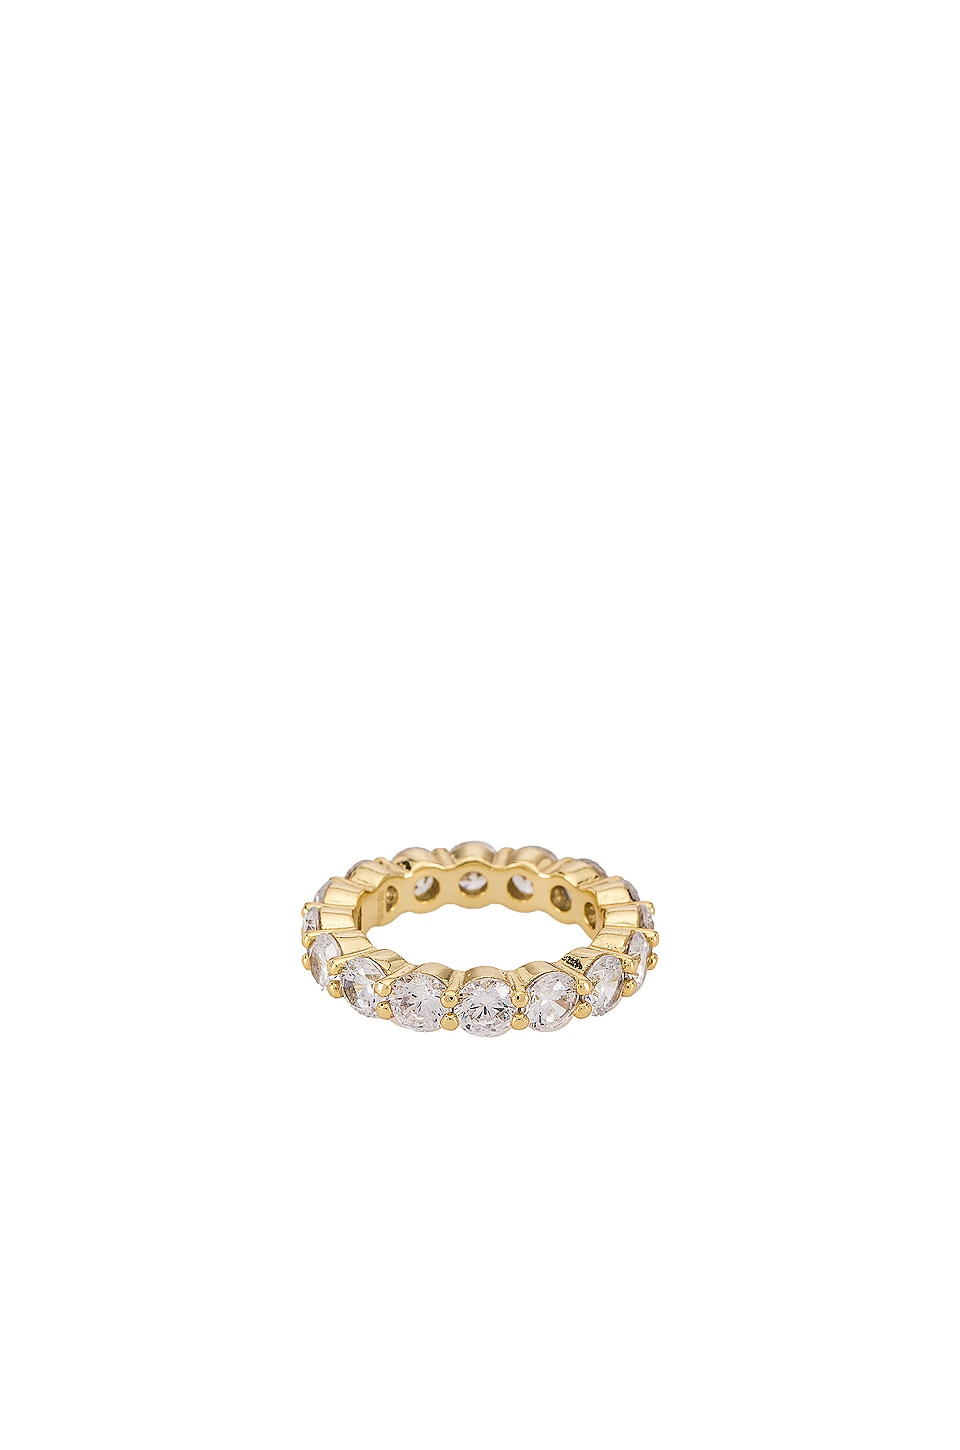 The M Jewelers NY The Round Eternity Band in Gold